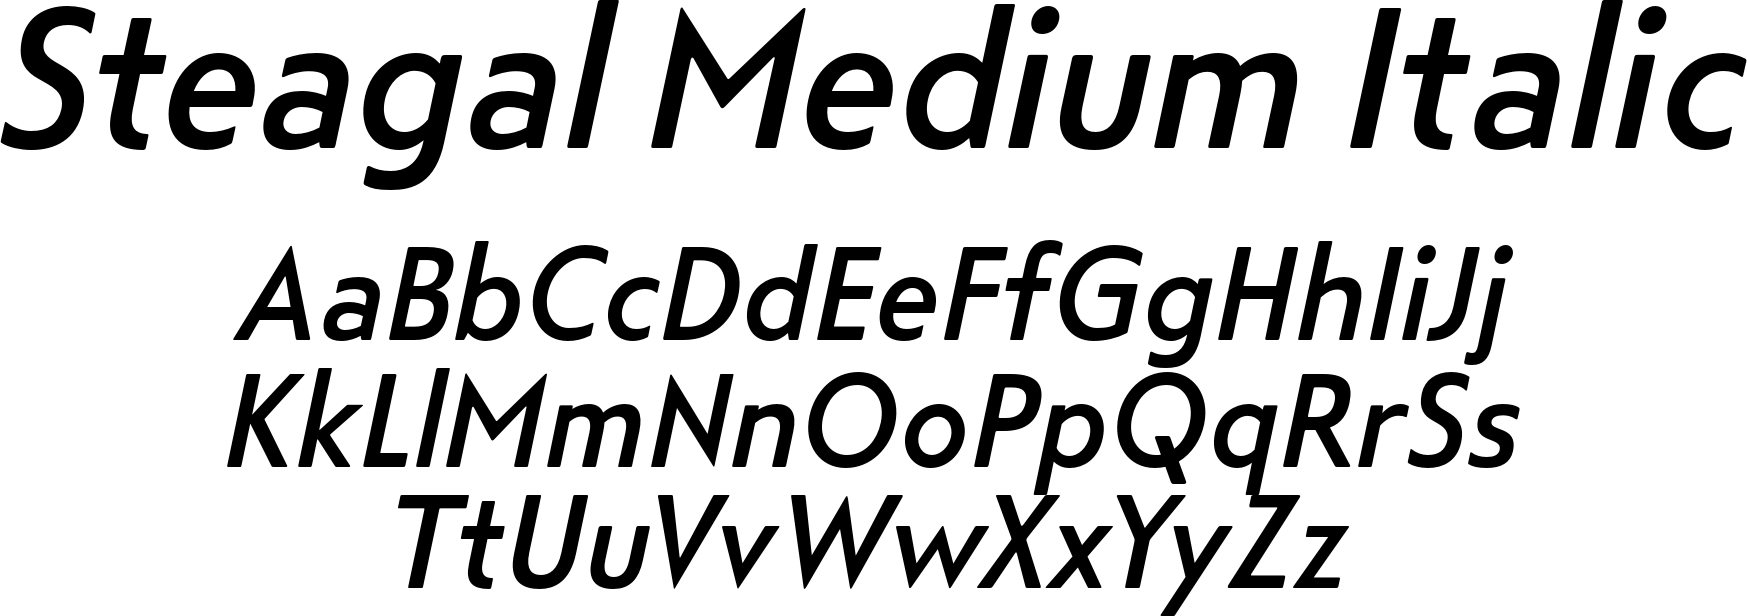 Steagal Medium Italic